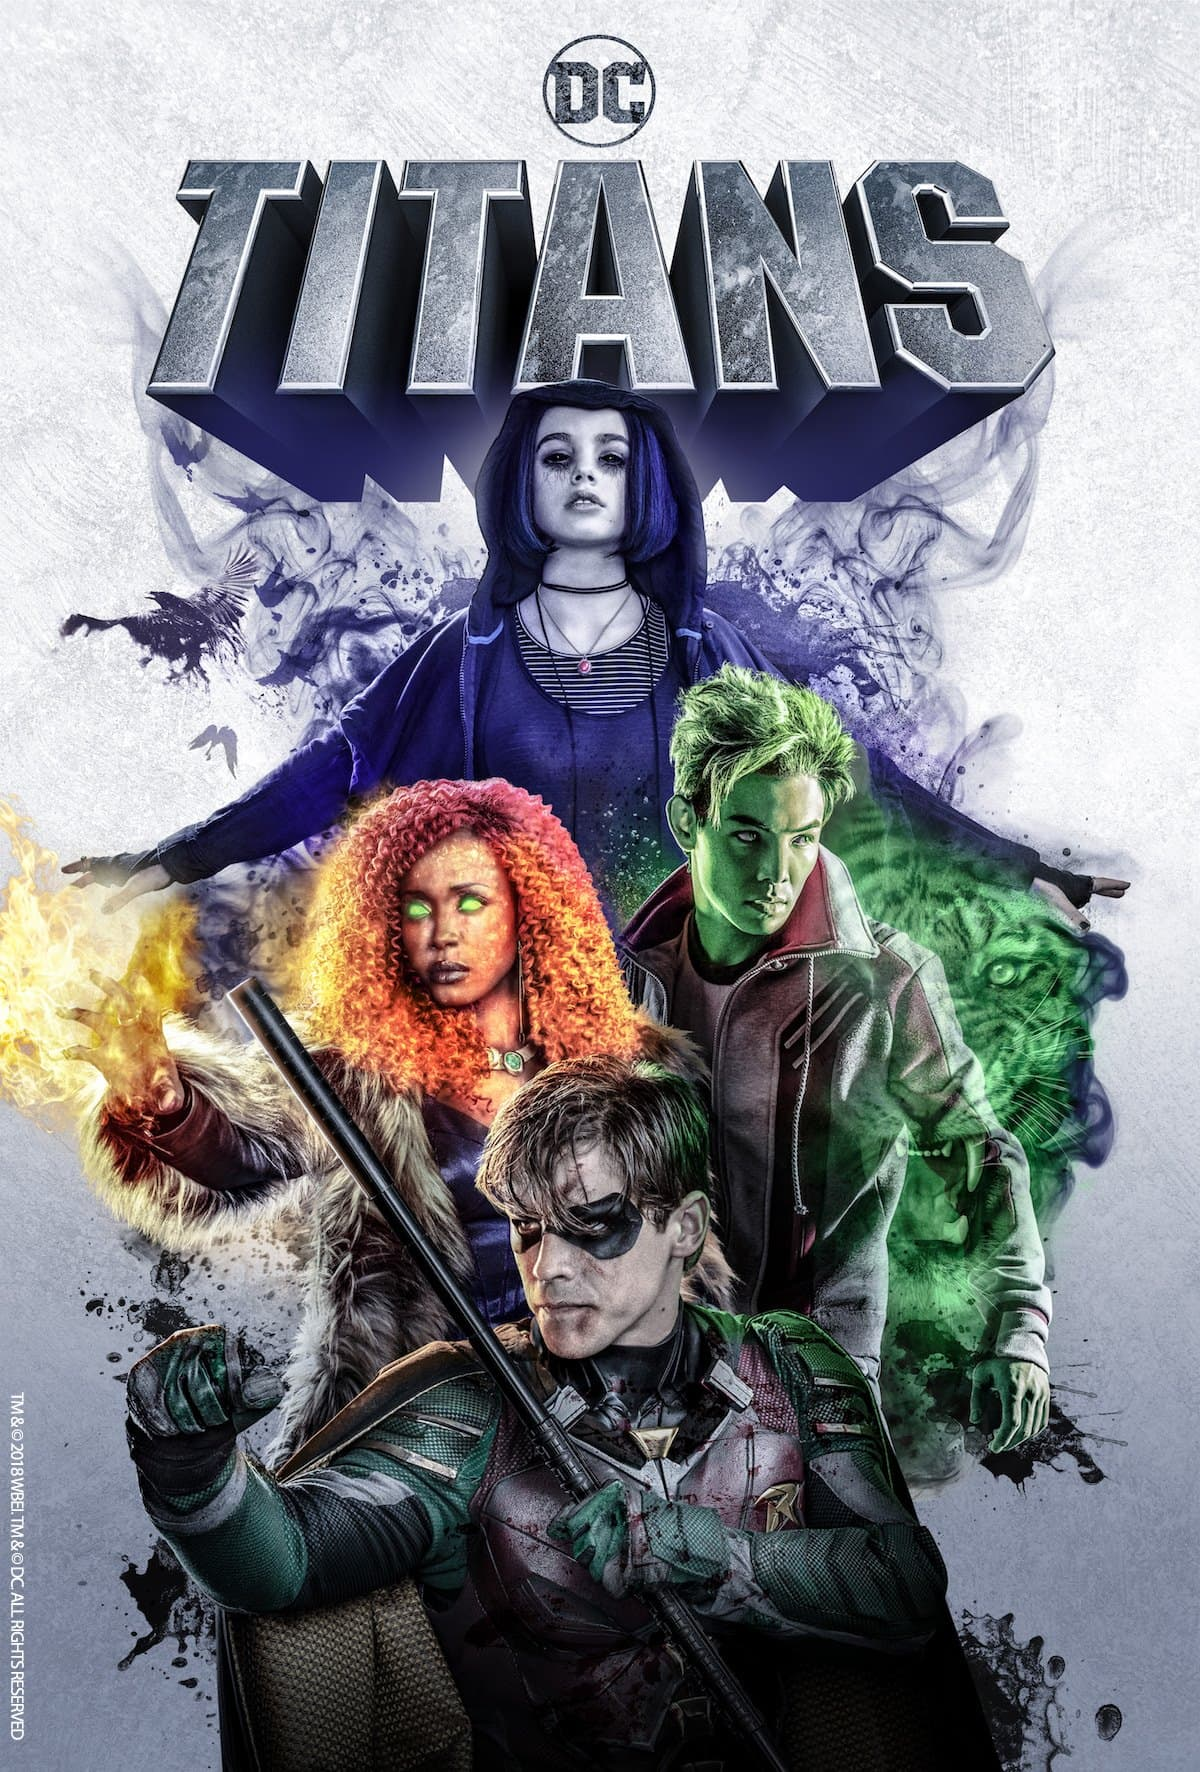 The 'Titans' official poster (Source: DC Universe)